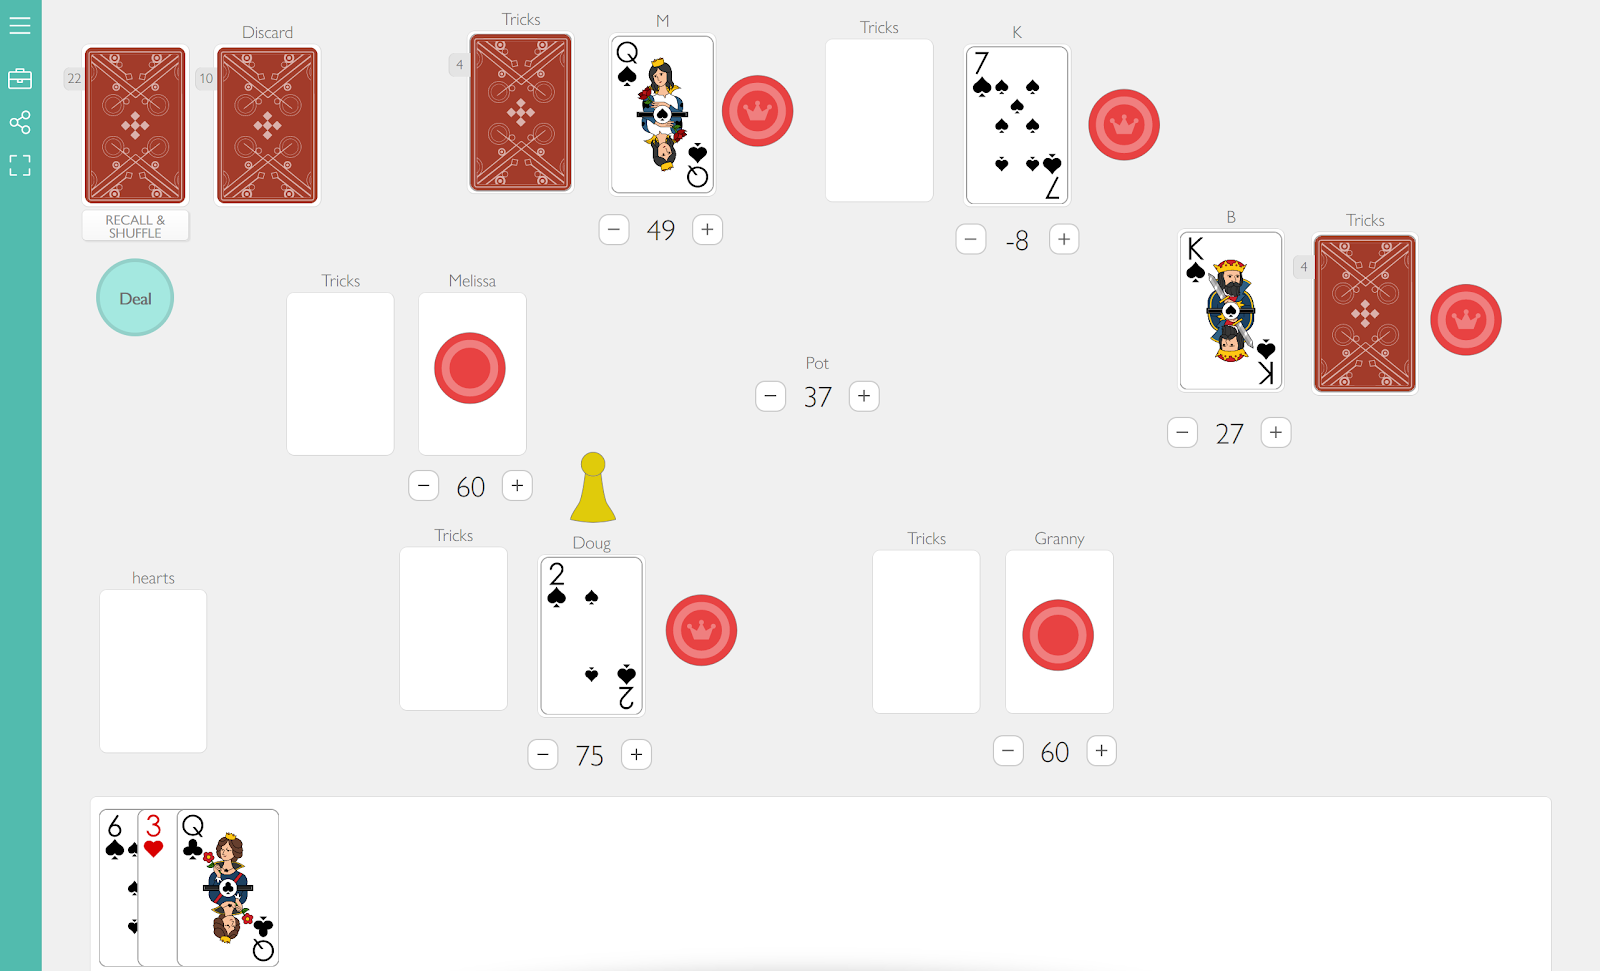 A screenshot of a six-player match of the card game Bourré, as played in the browser on playingcards.io